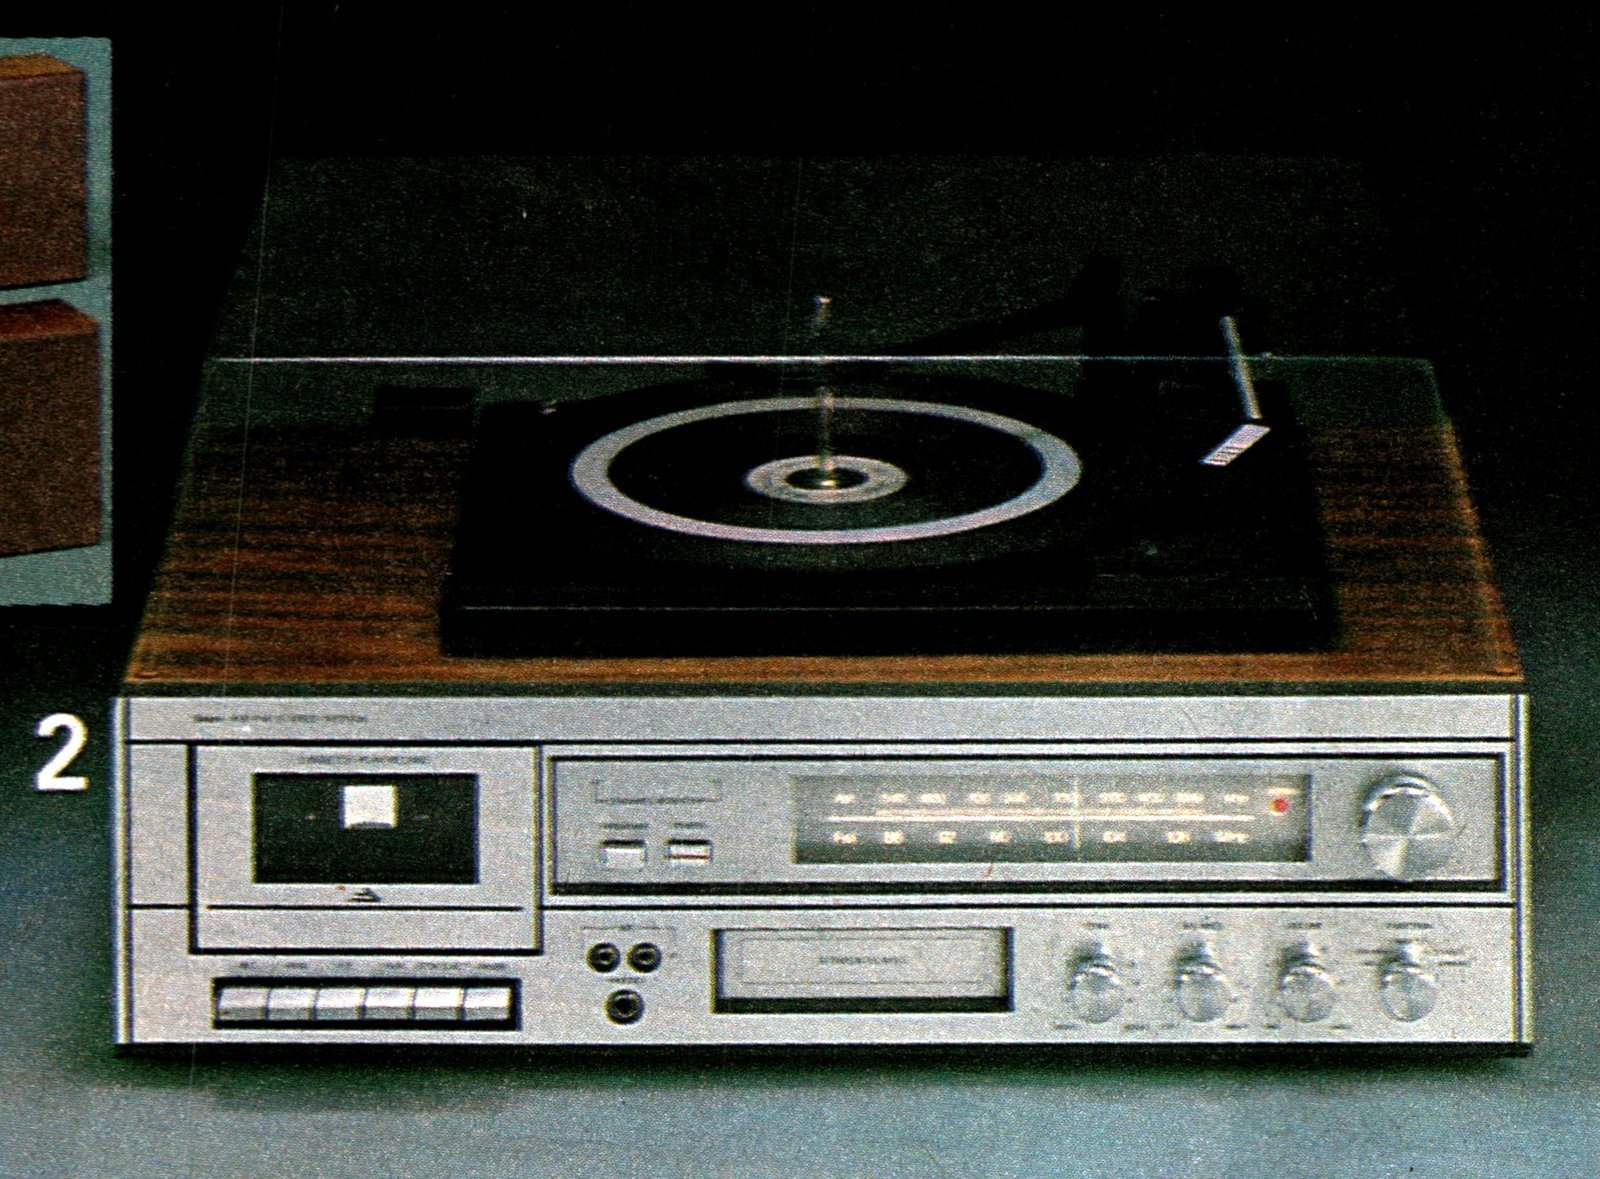 Vintage home stereo turntable with tape deck